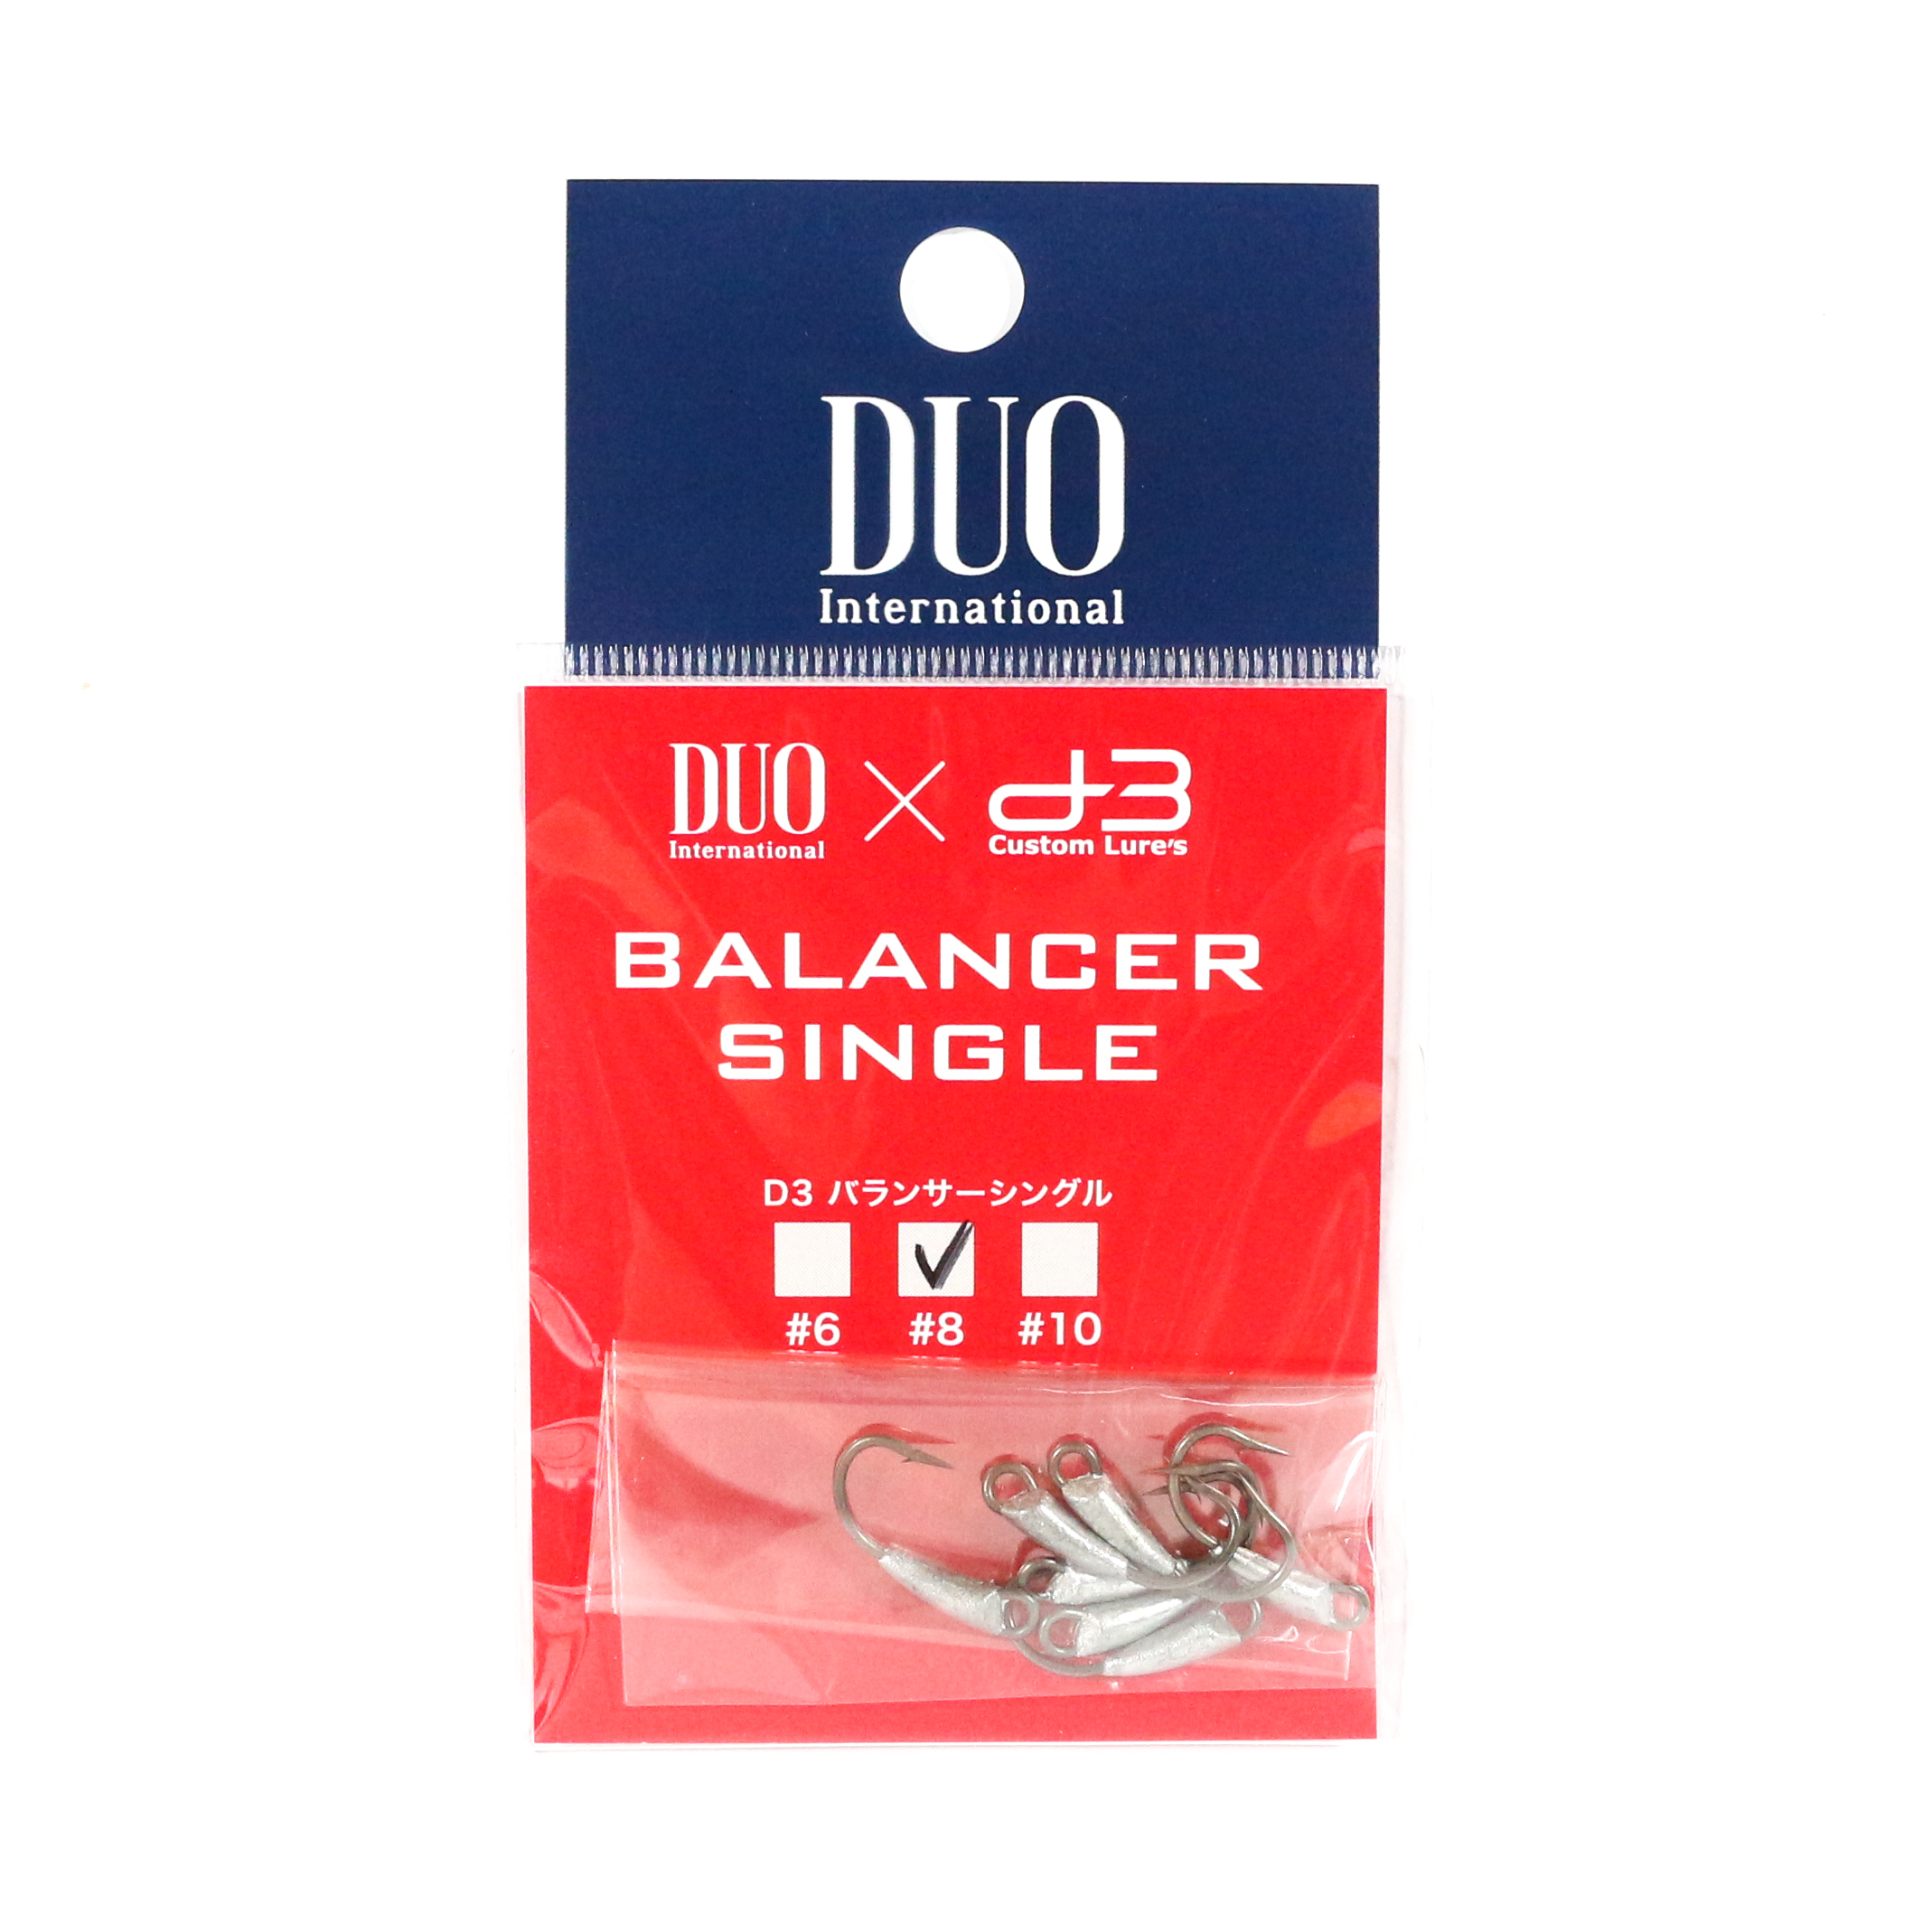 Duo D-3 Balancer Single Hook for Ryuki 60 , 70 Size 8, 7 Pc per pack (8231)